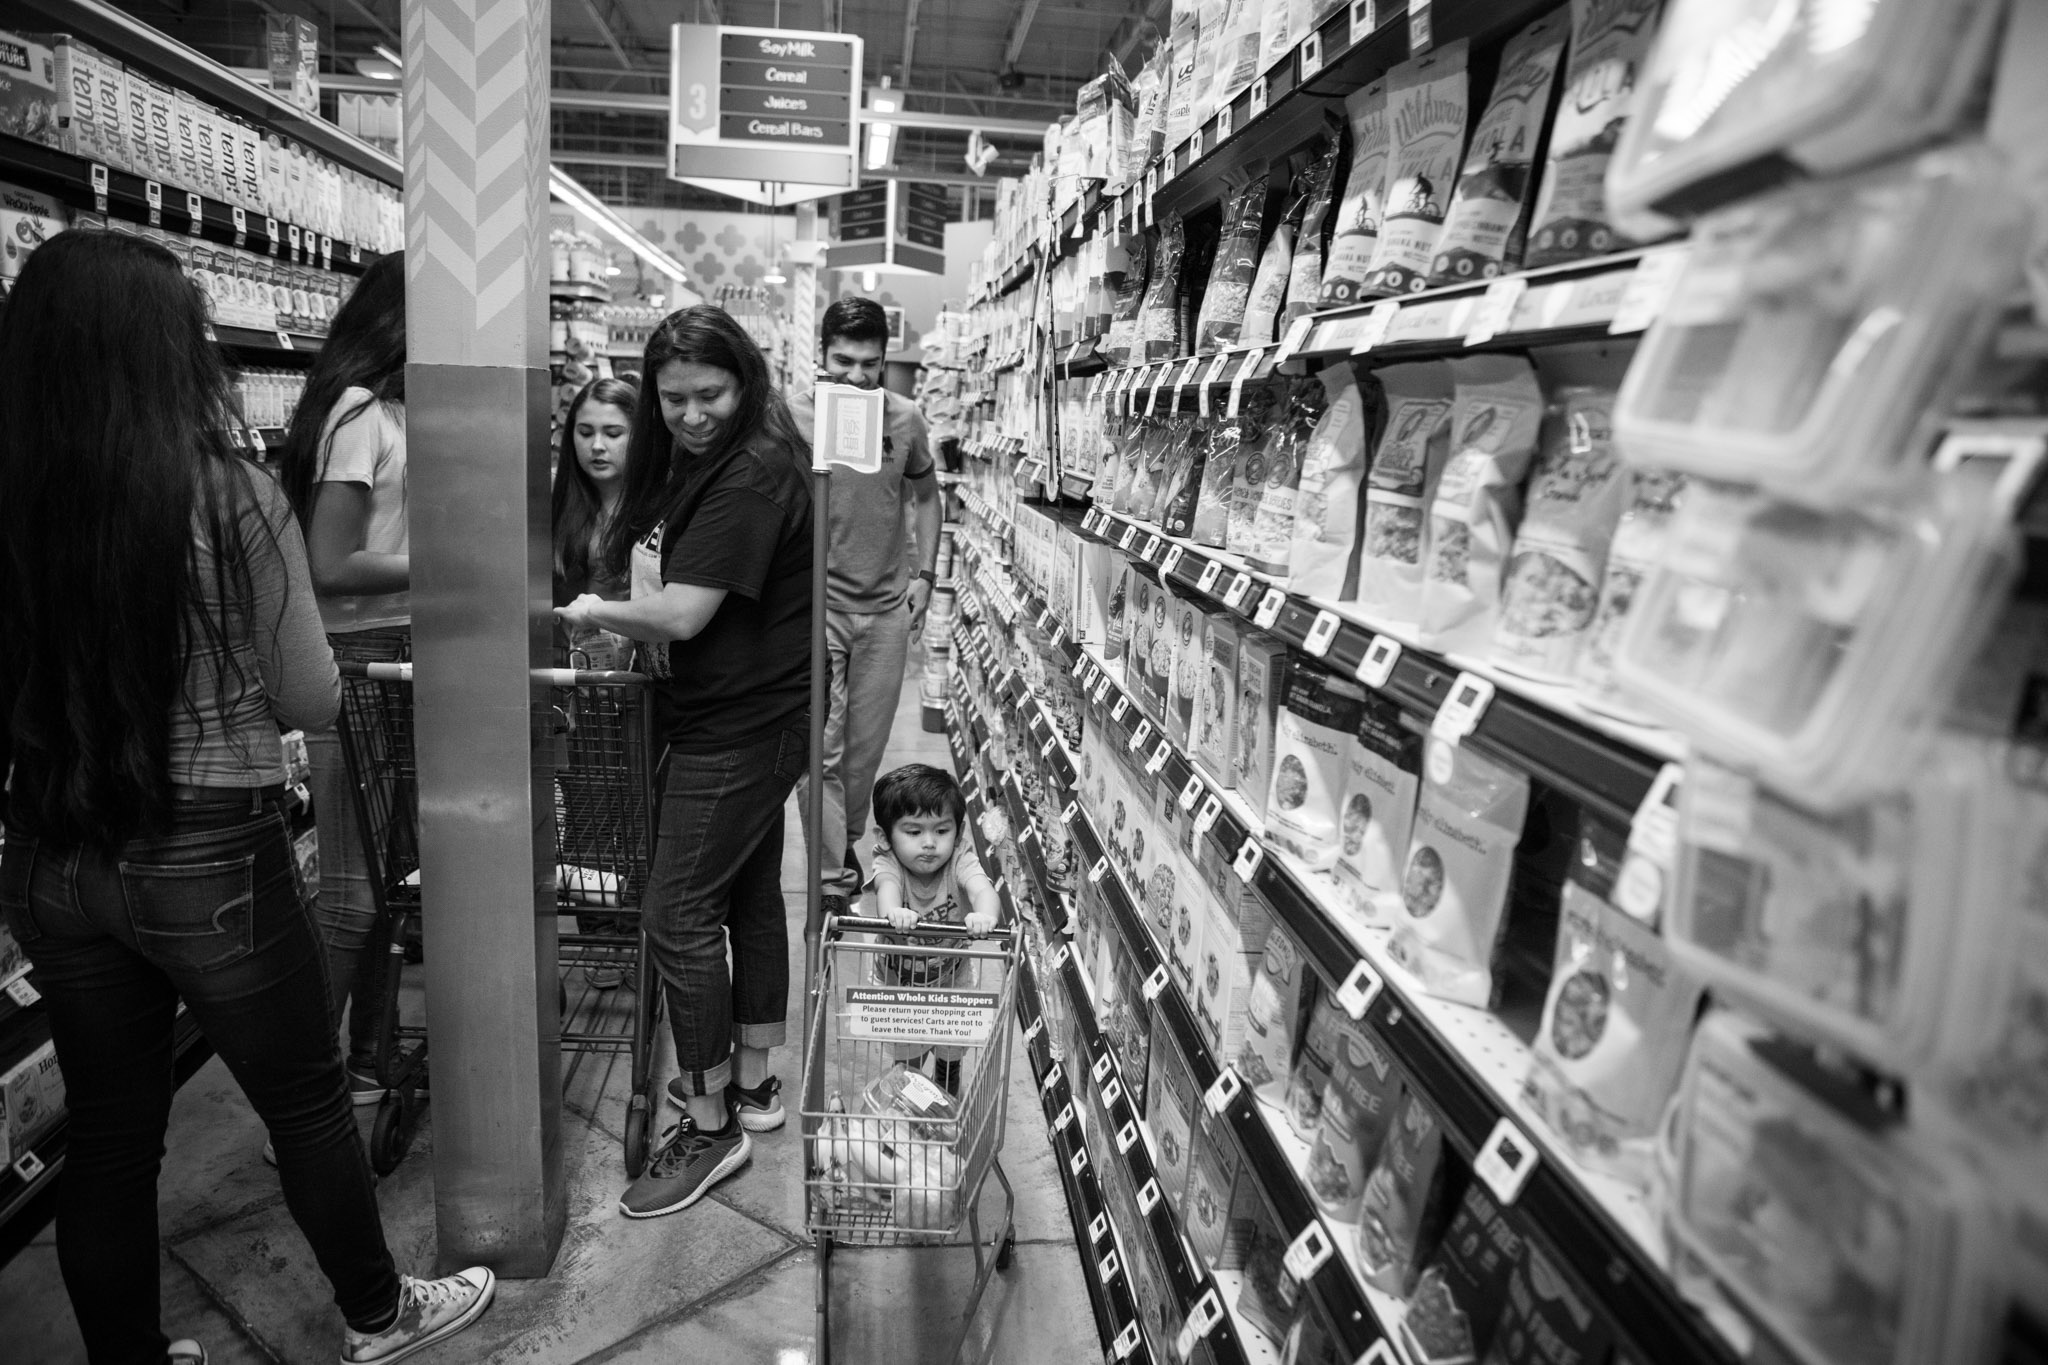 Jimmy, 2, races through the aisles of Whole Foods as his parents, aunts, and grandmother shop for vegan food as part of a healthy lifestyle.